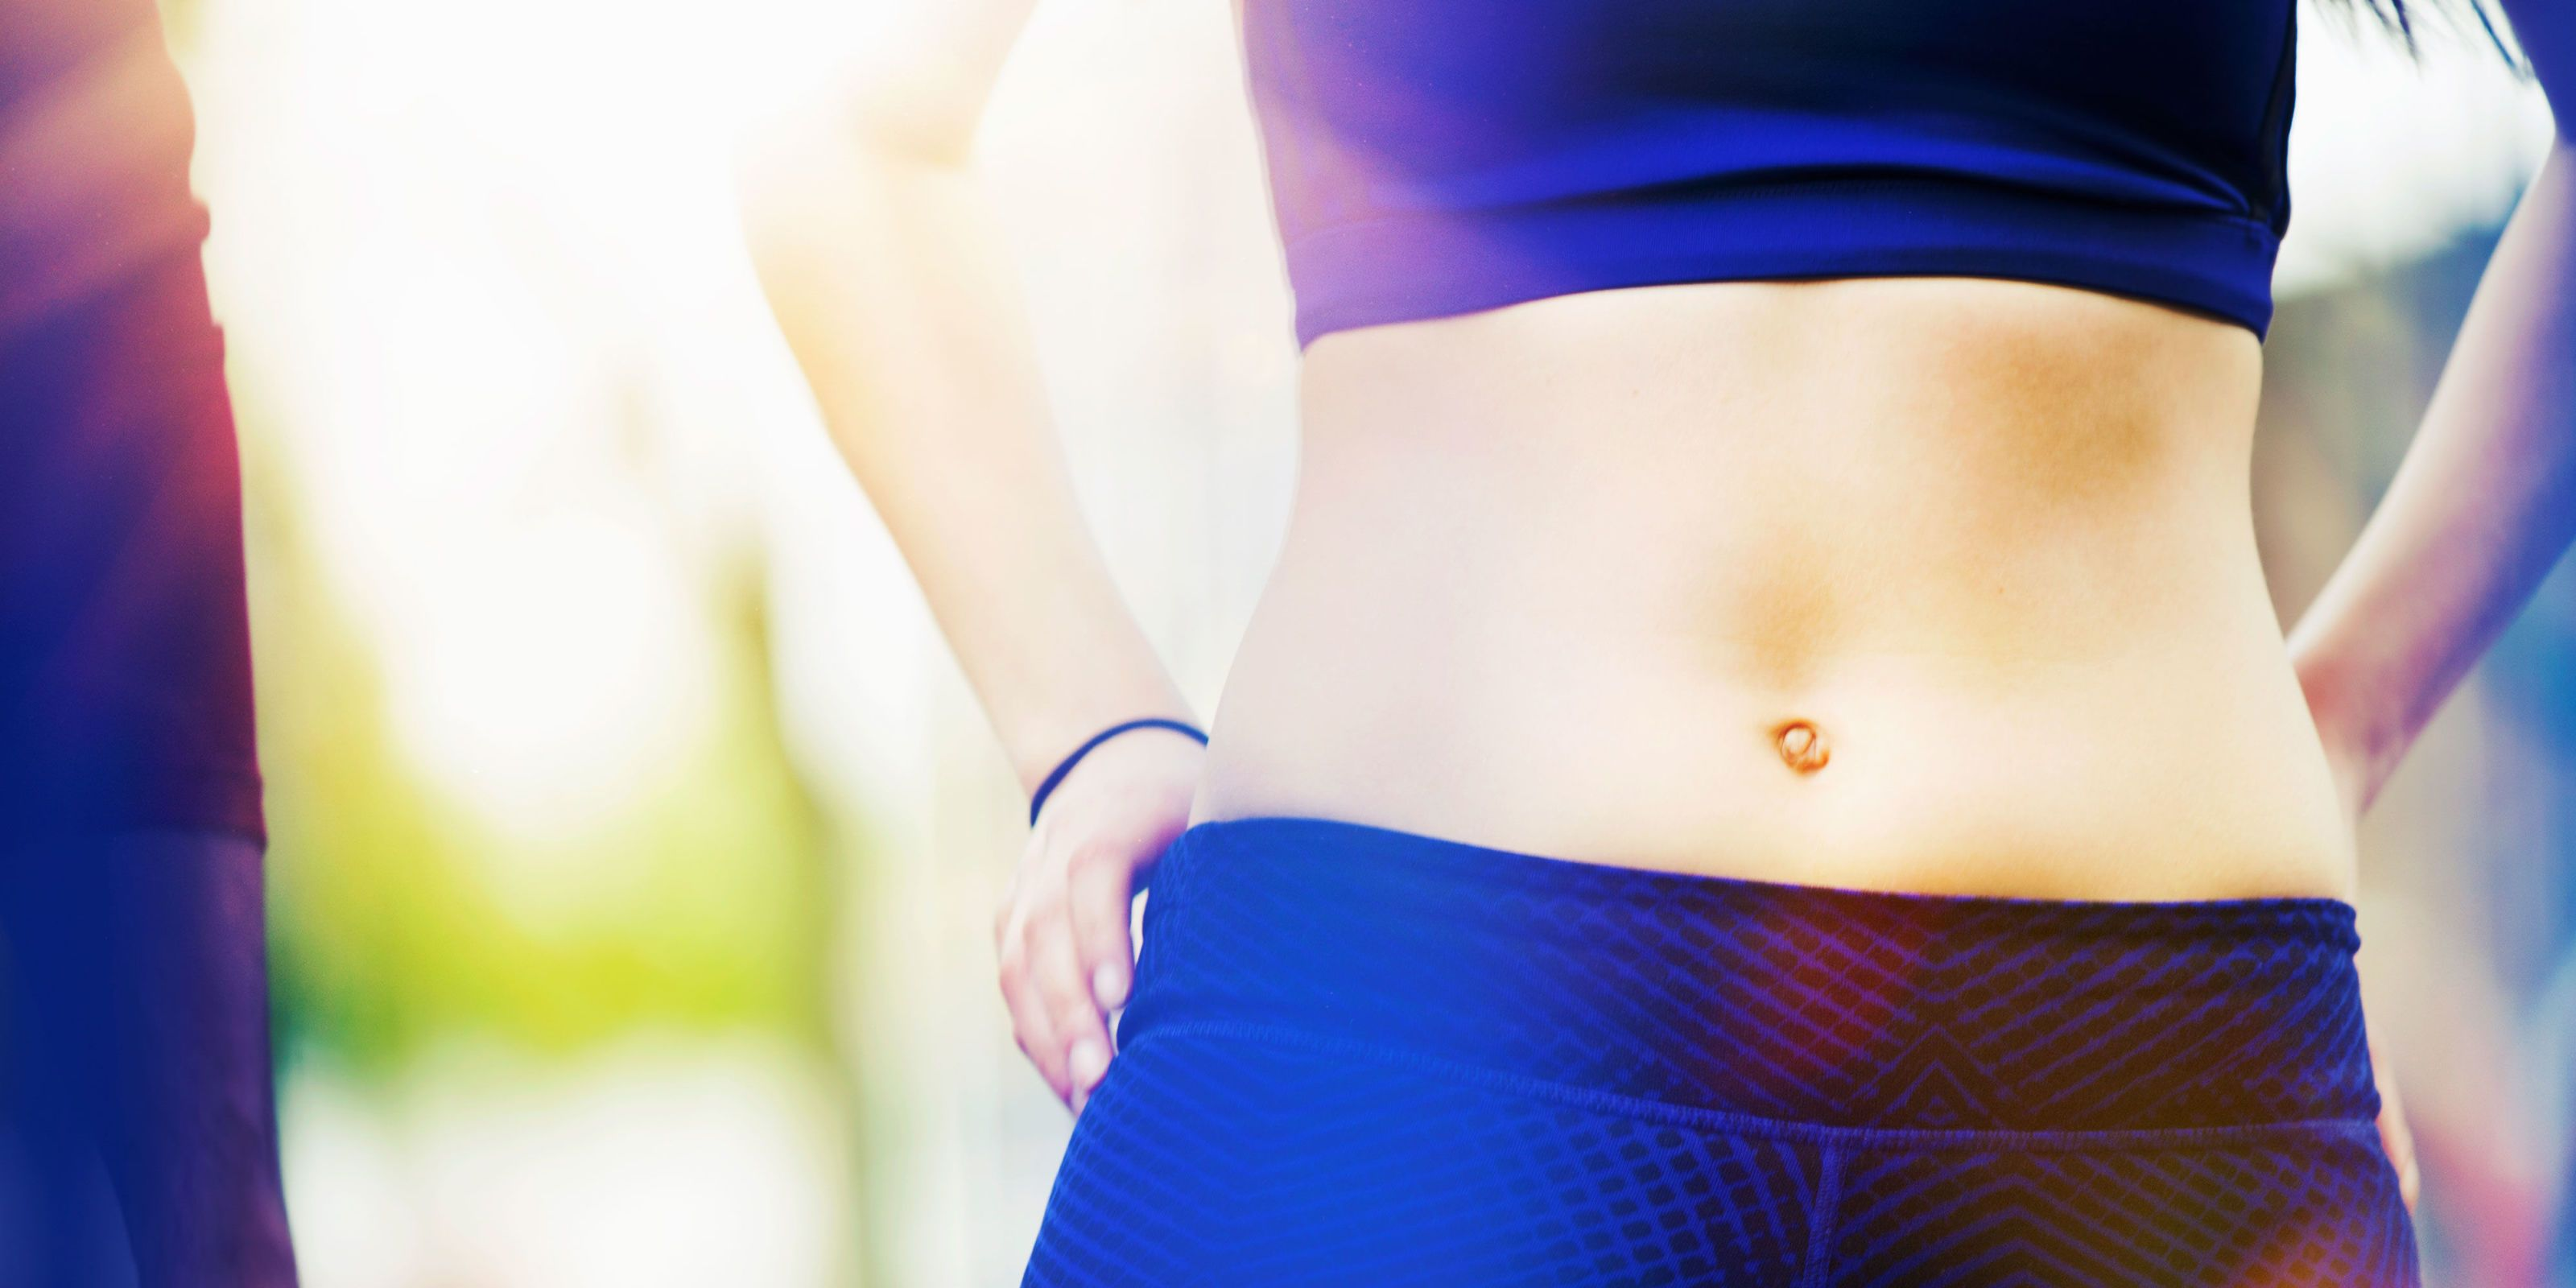 methods to remove stomach fat